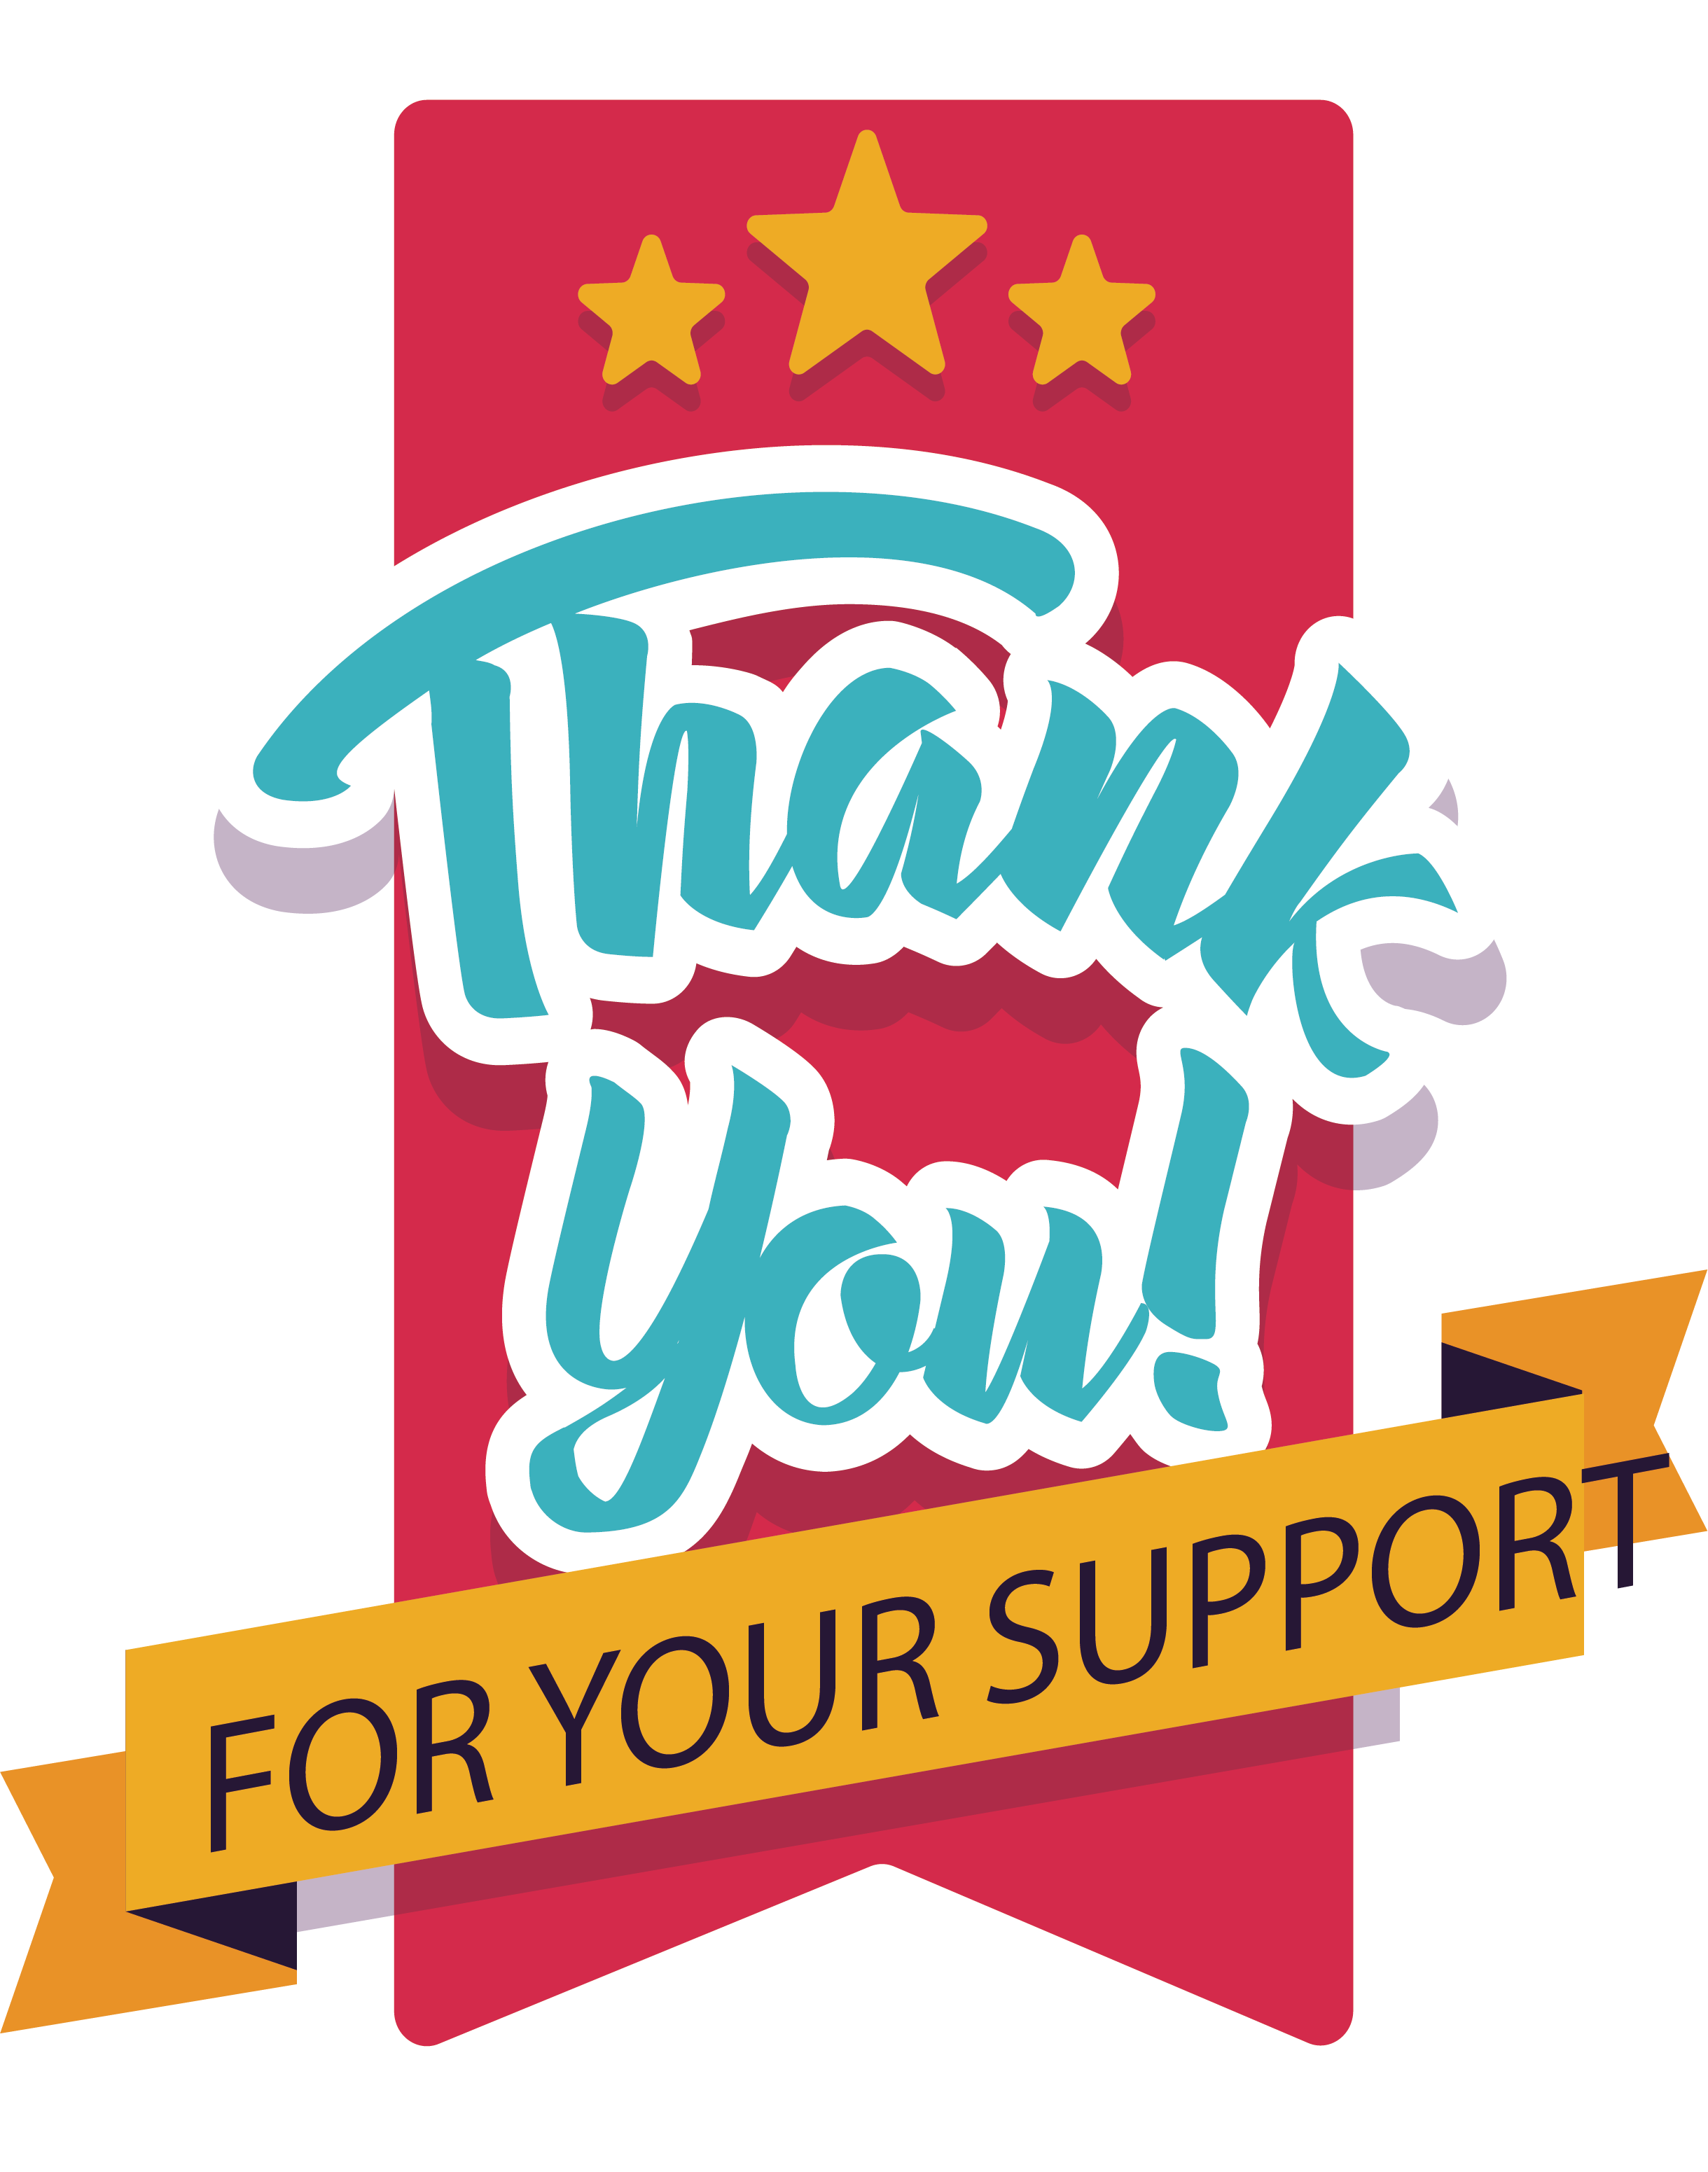 Thank You for Your Support! - KRBD